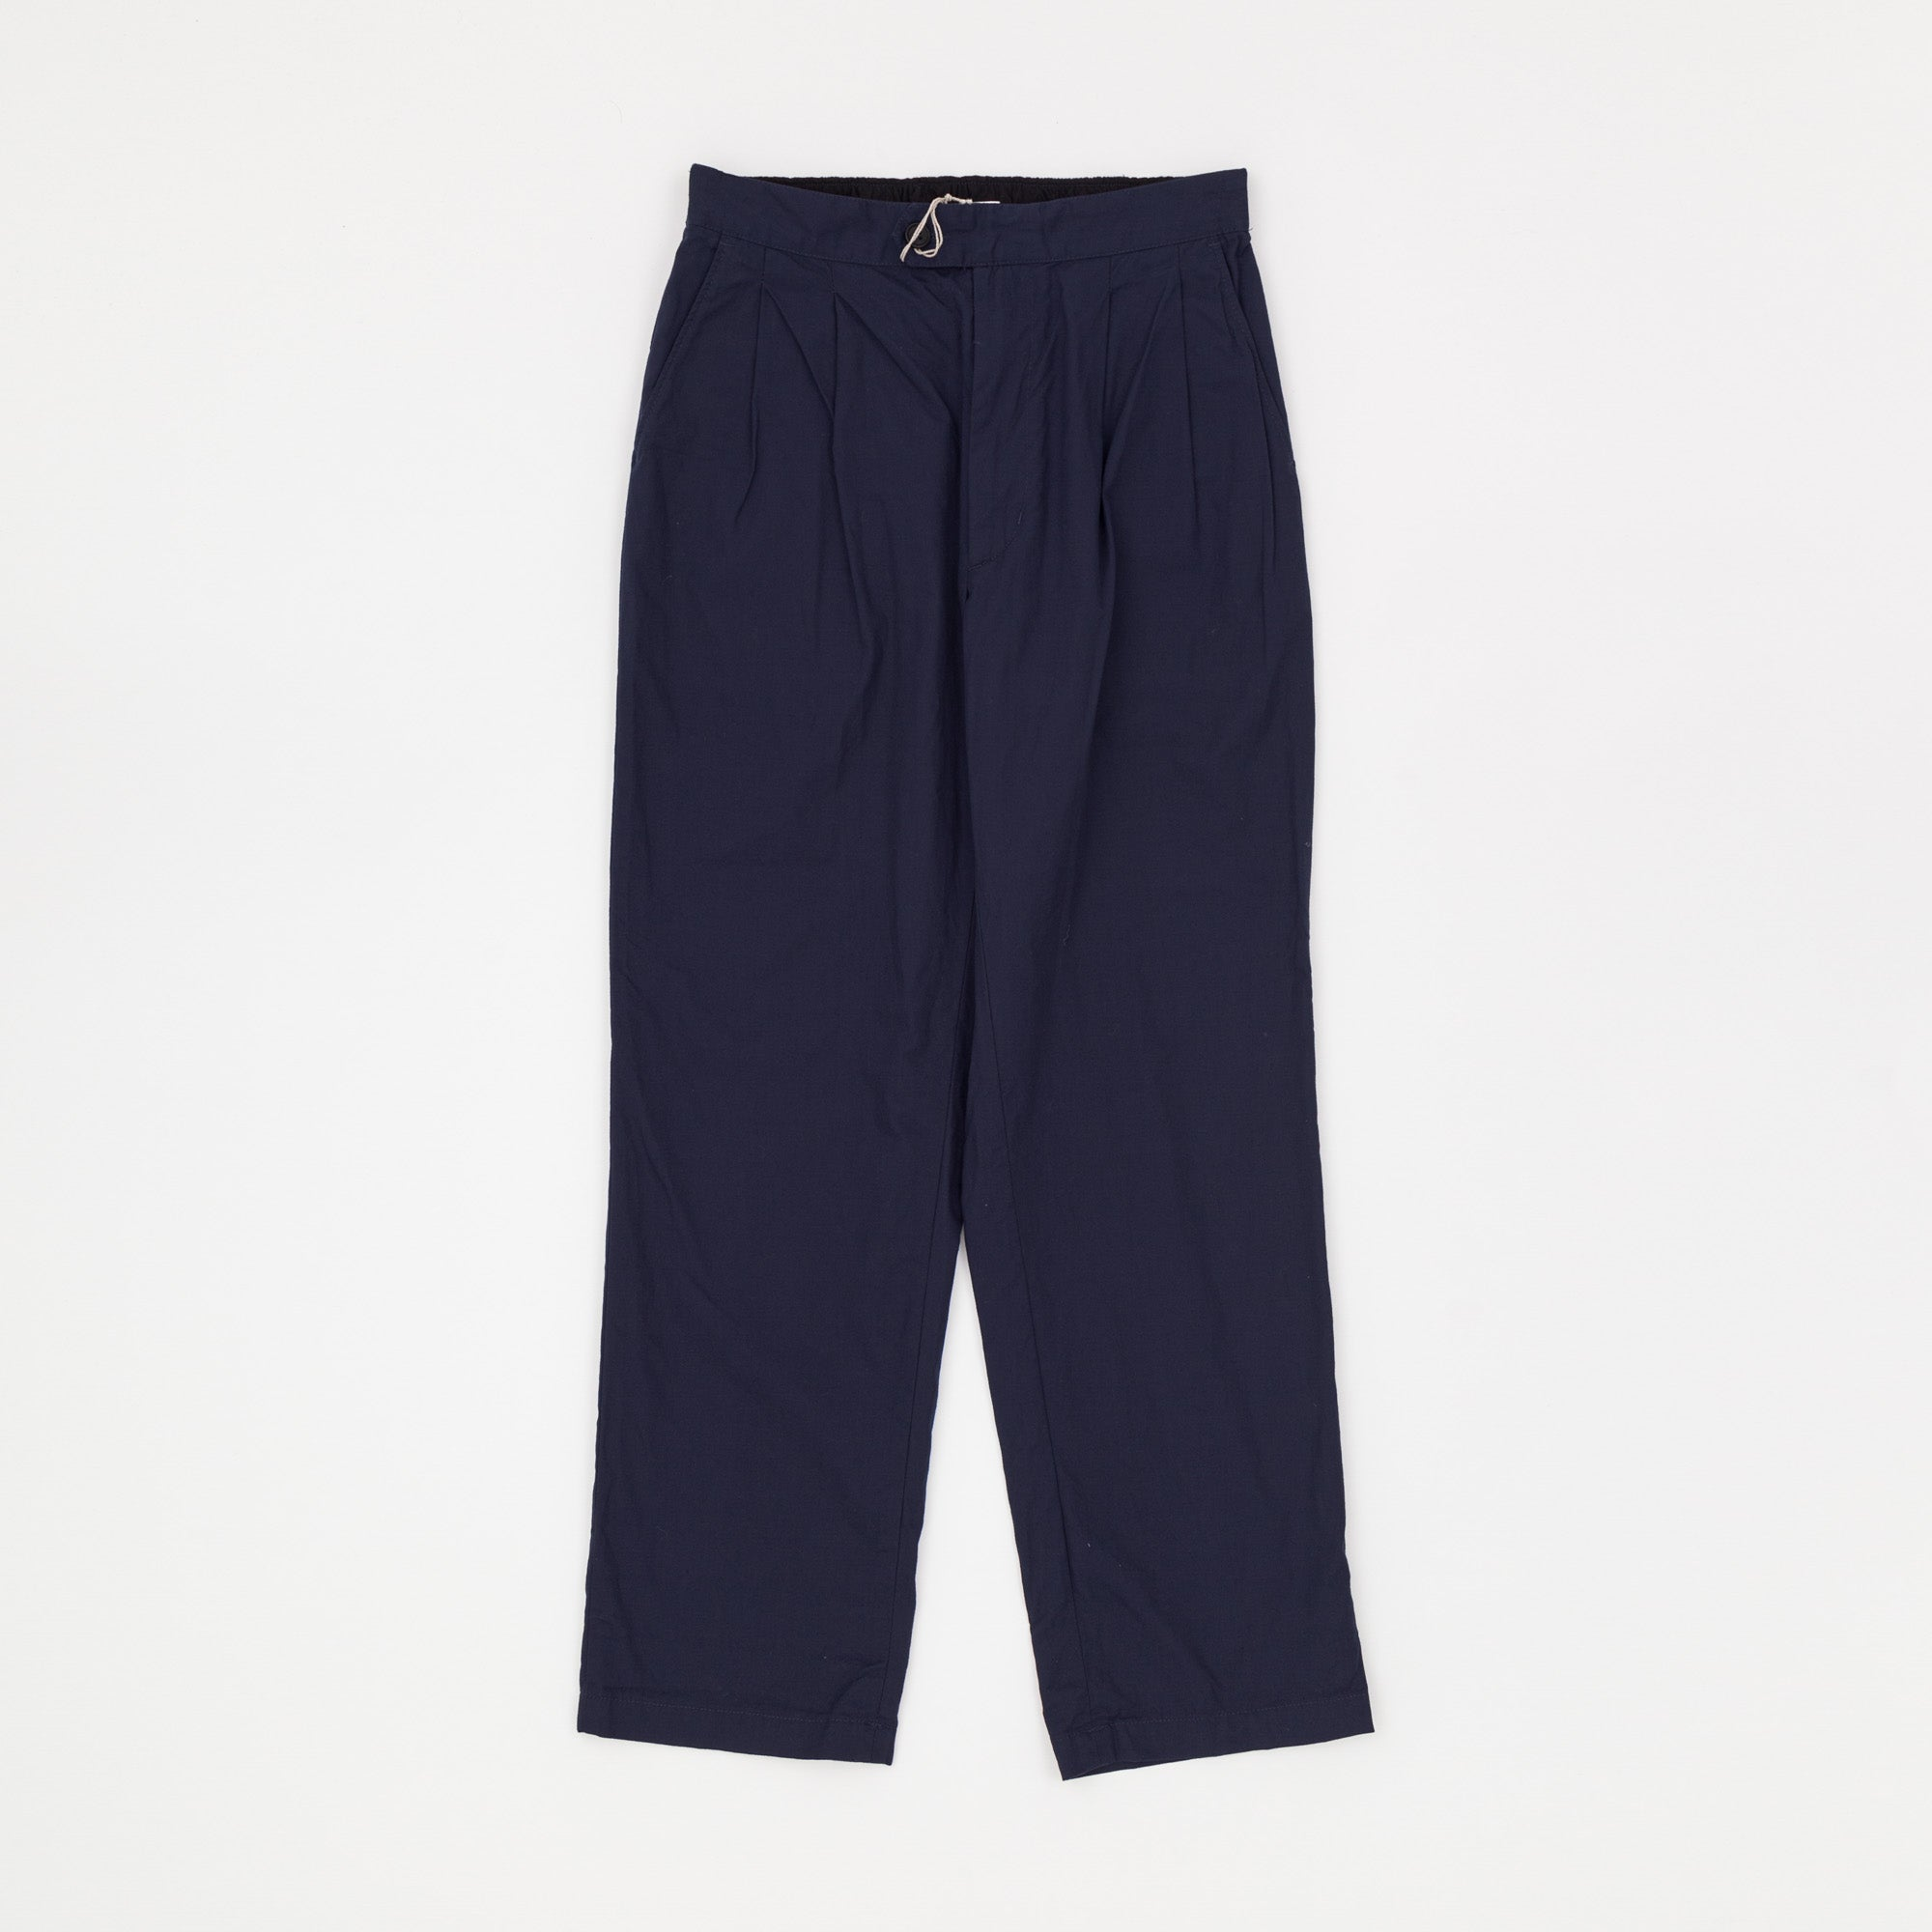 Engineered Garments Malibu Pant